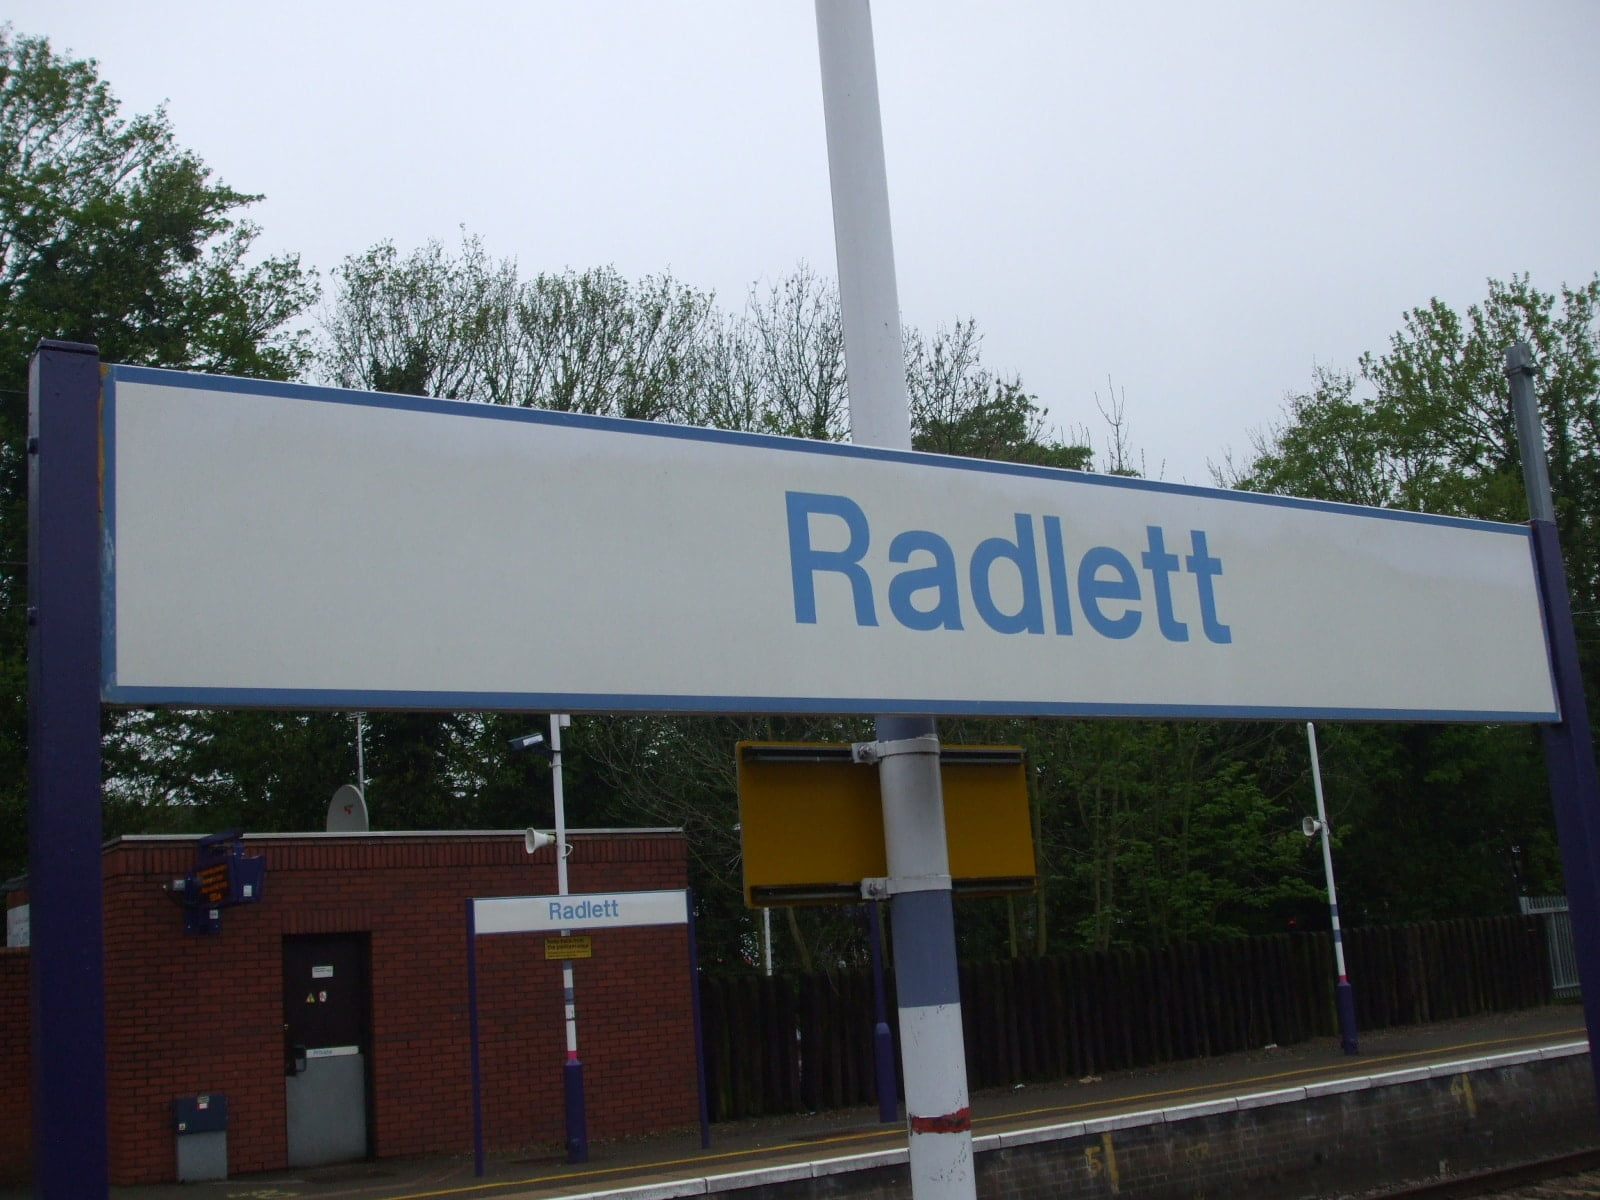 IT Support in Radlett